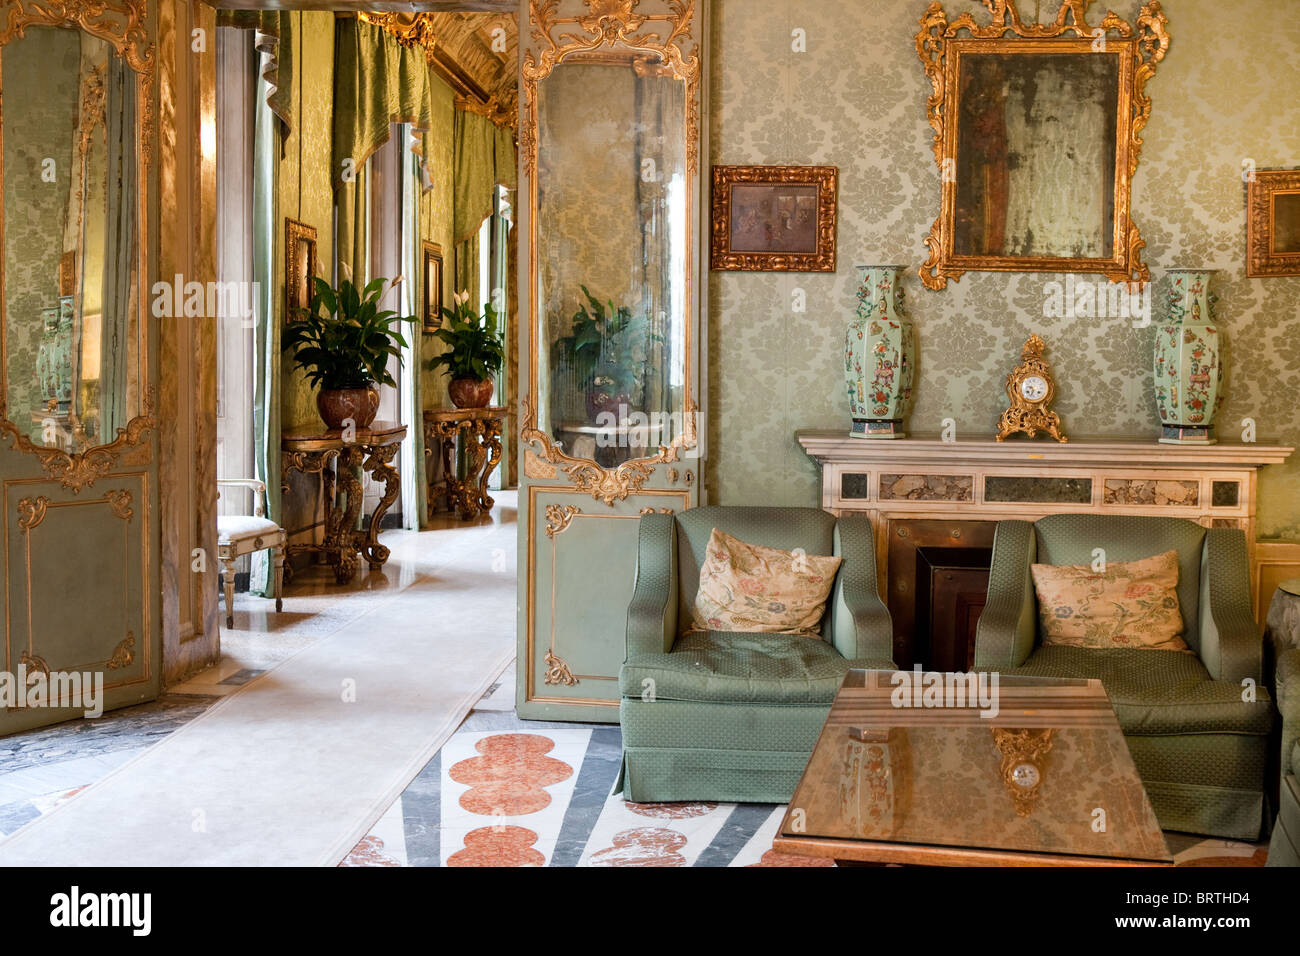 Rondinini palace palace interior italian decorating for Ancient roman interior decoration